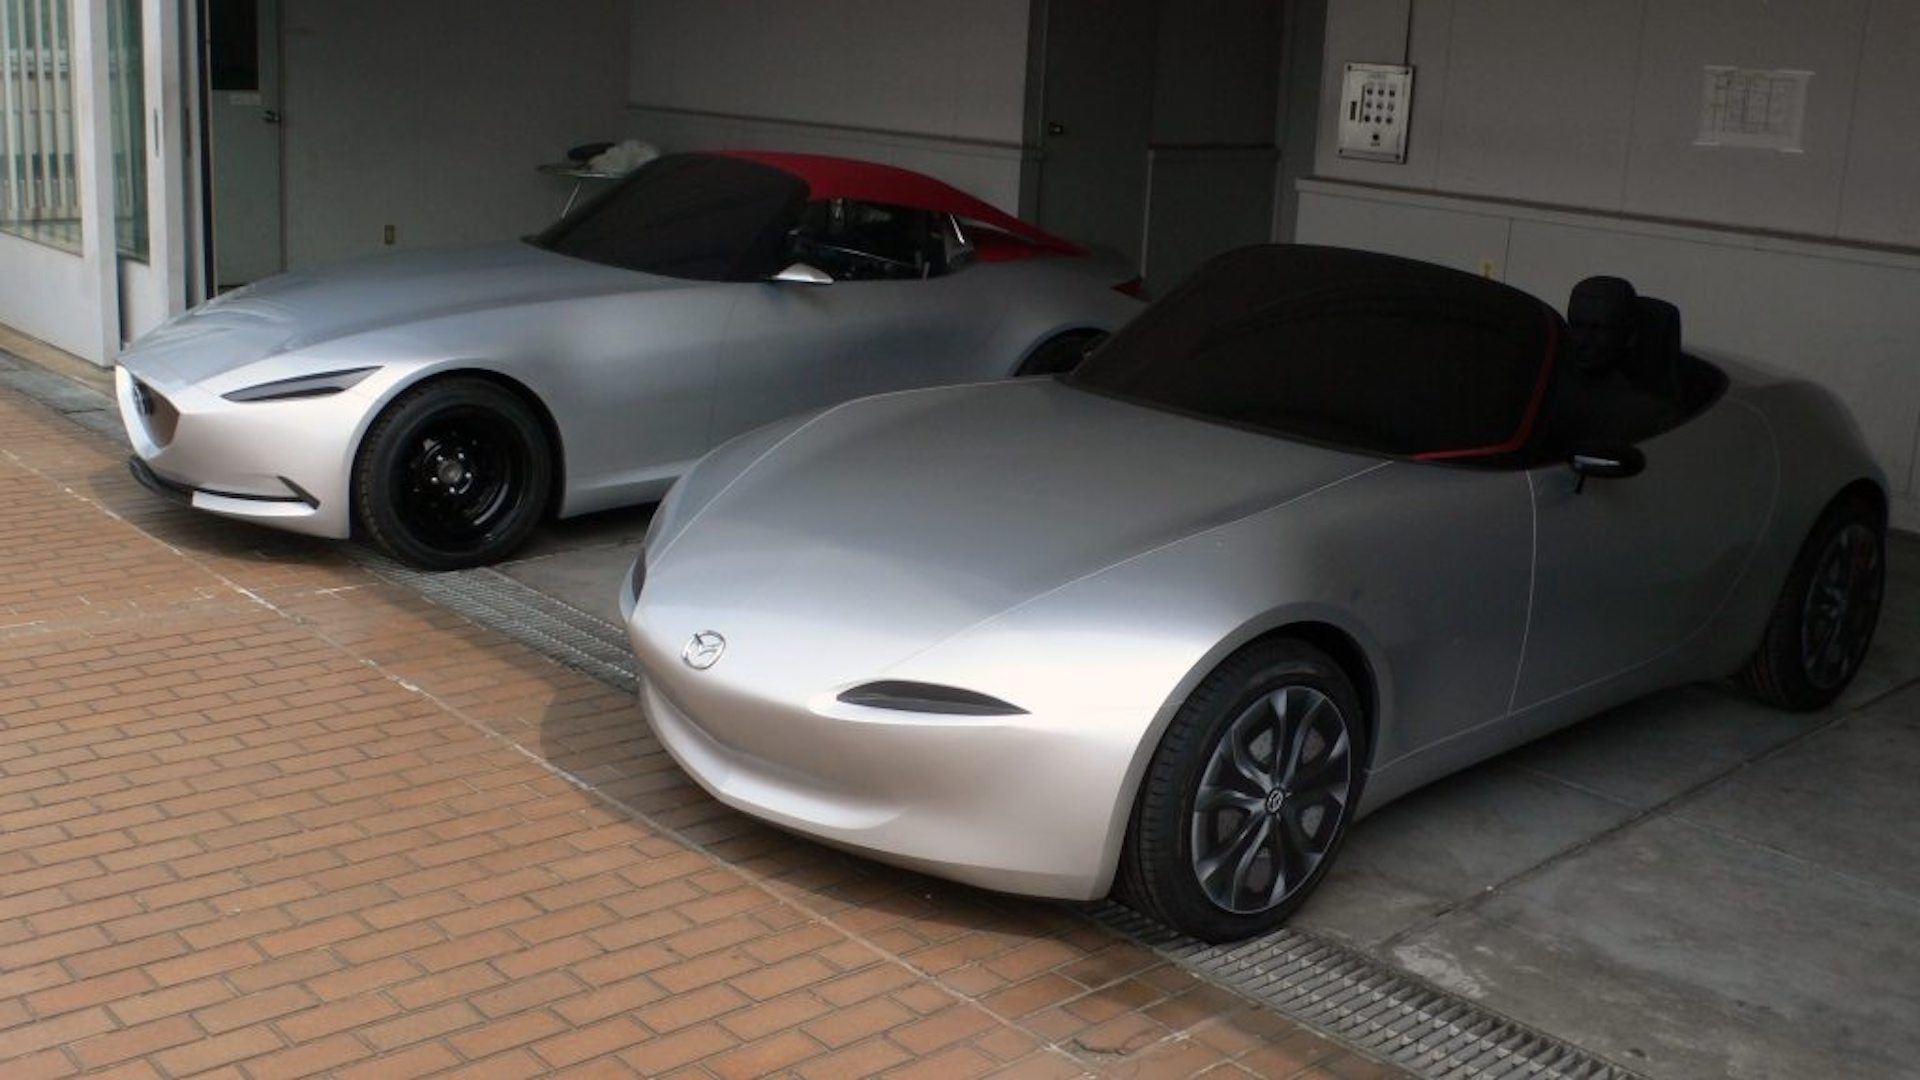 mazda mx 5 miata design proposals reveal what could have been. Black Bedroom Furniture Sets. Home Design Ideas